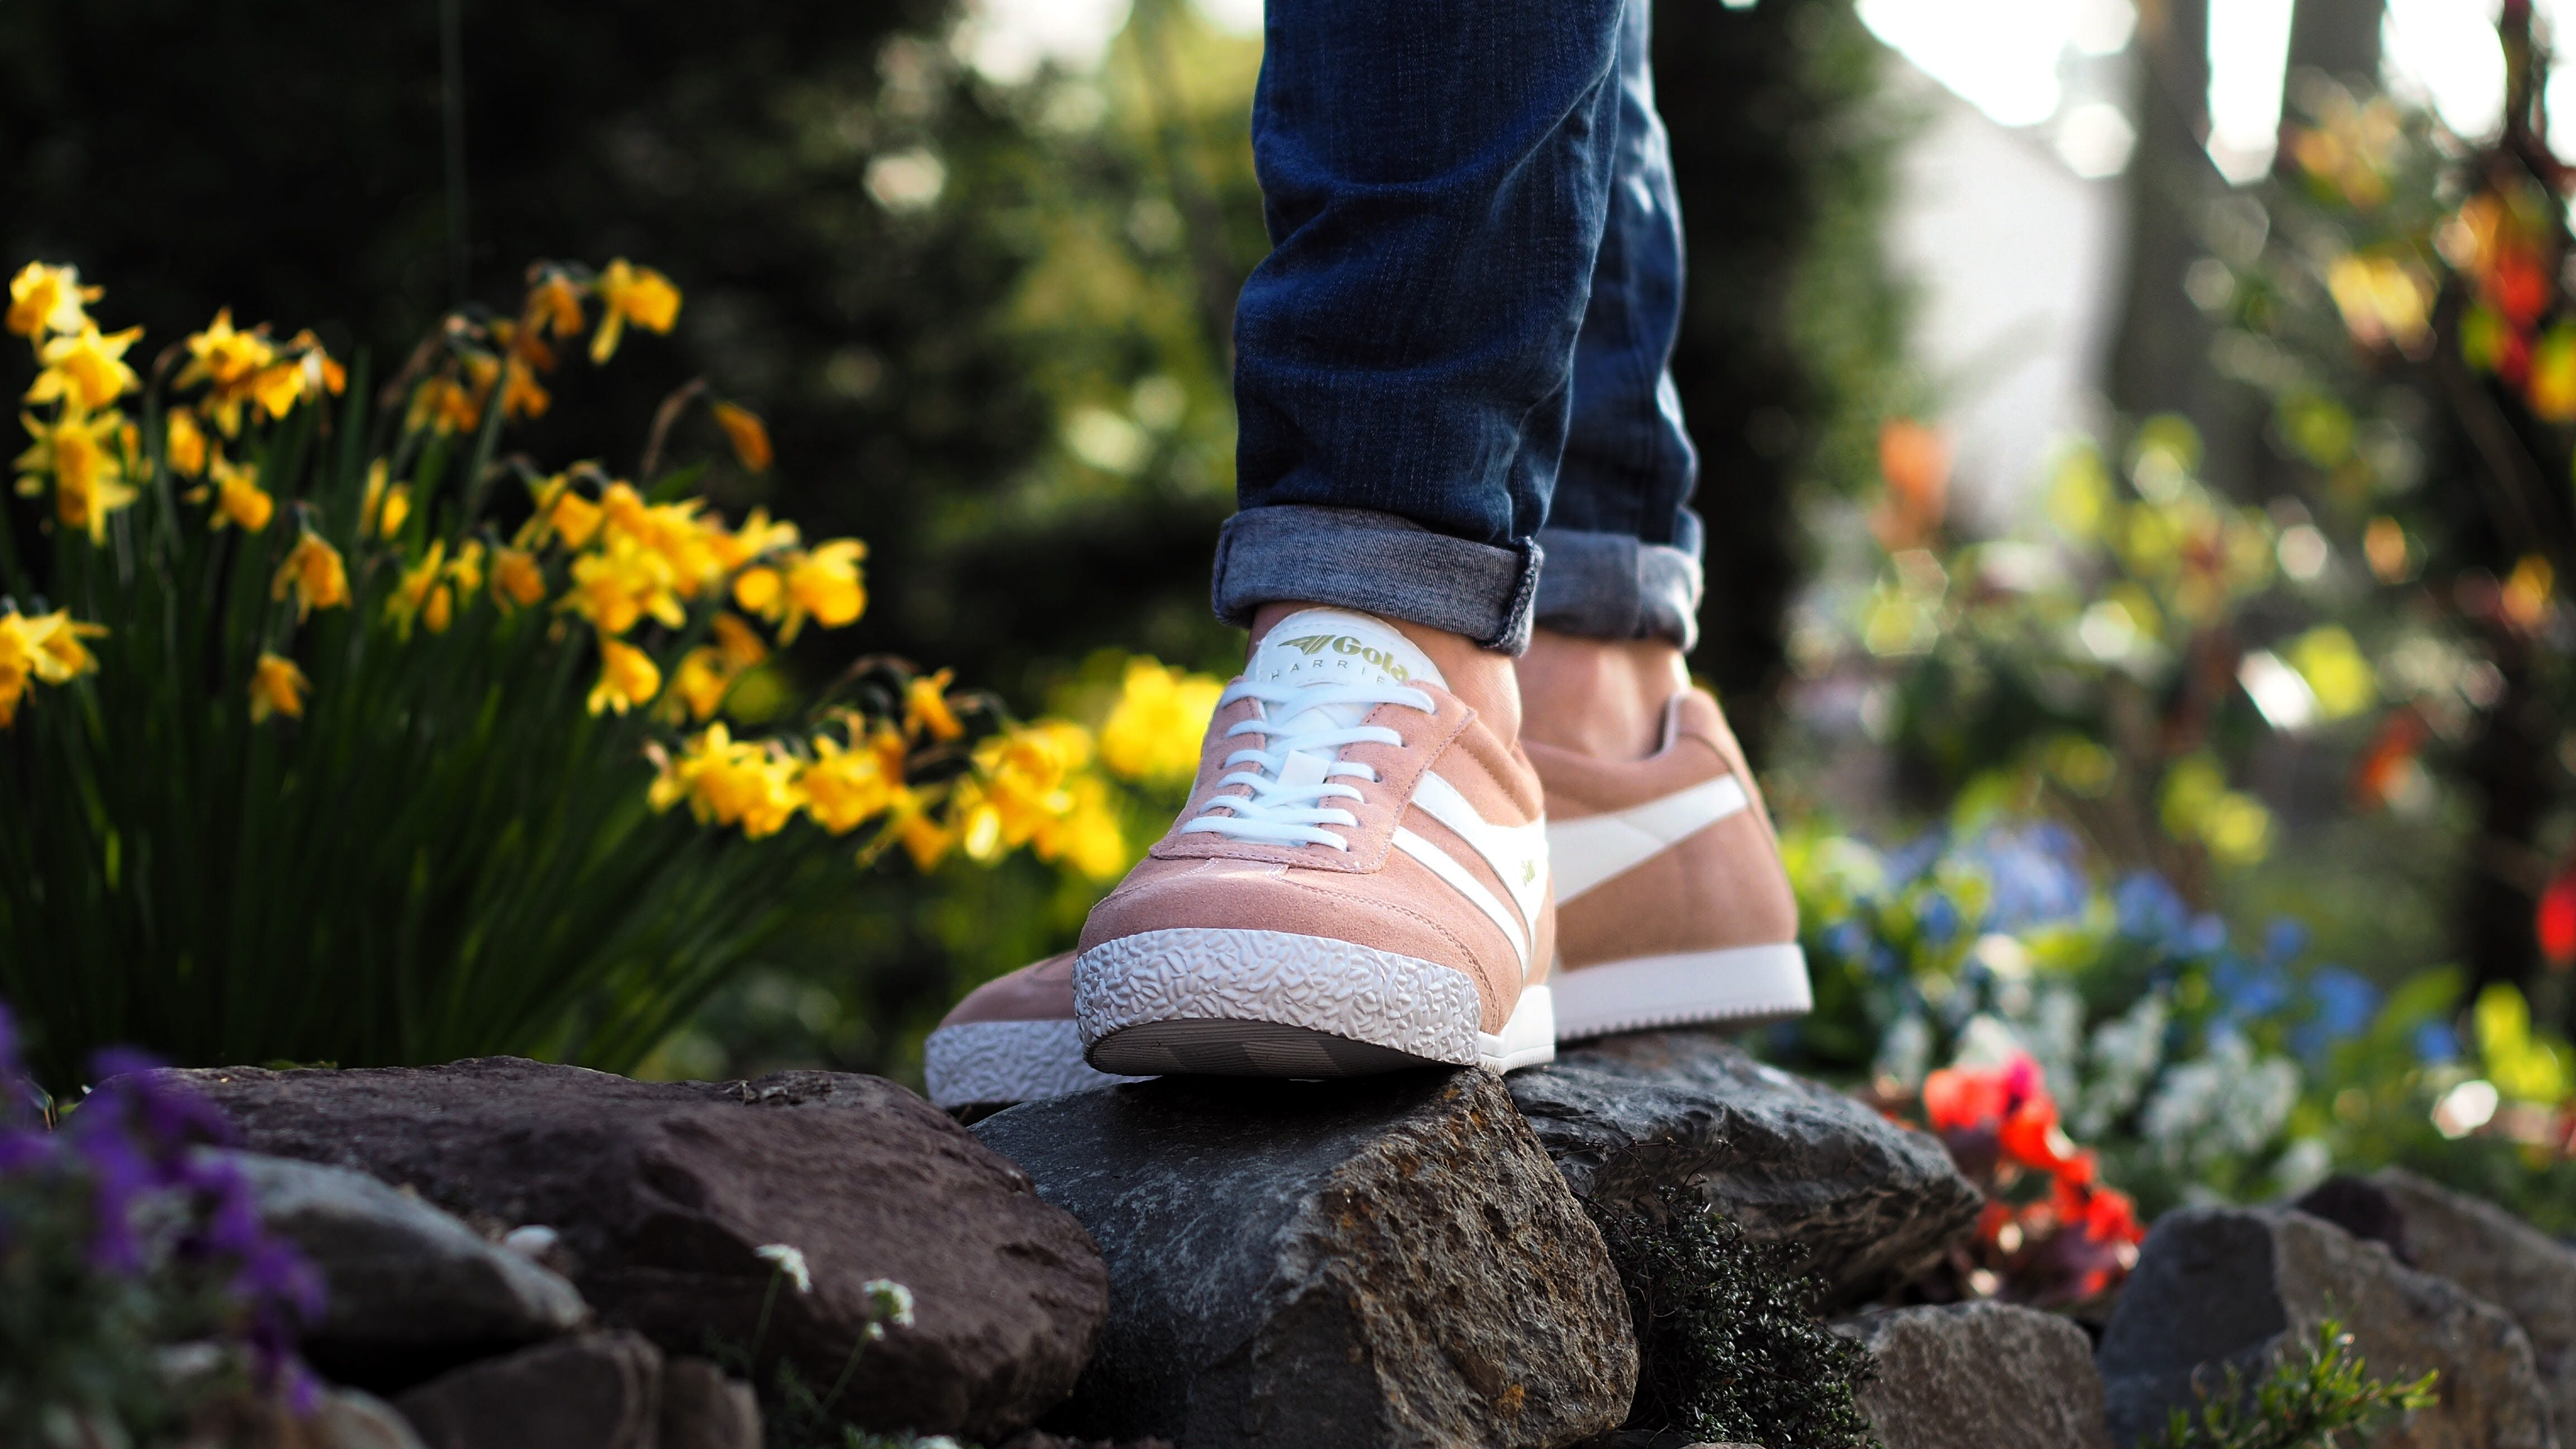 Person Wearing Pink Nike Low-top Sneakers Stepping on Stone Surrounded by Flower